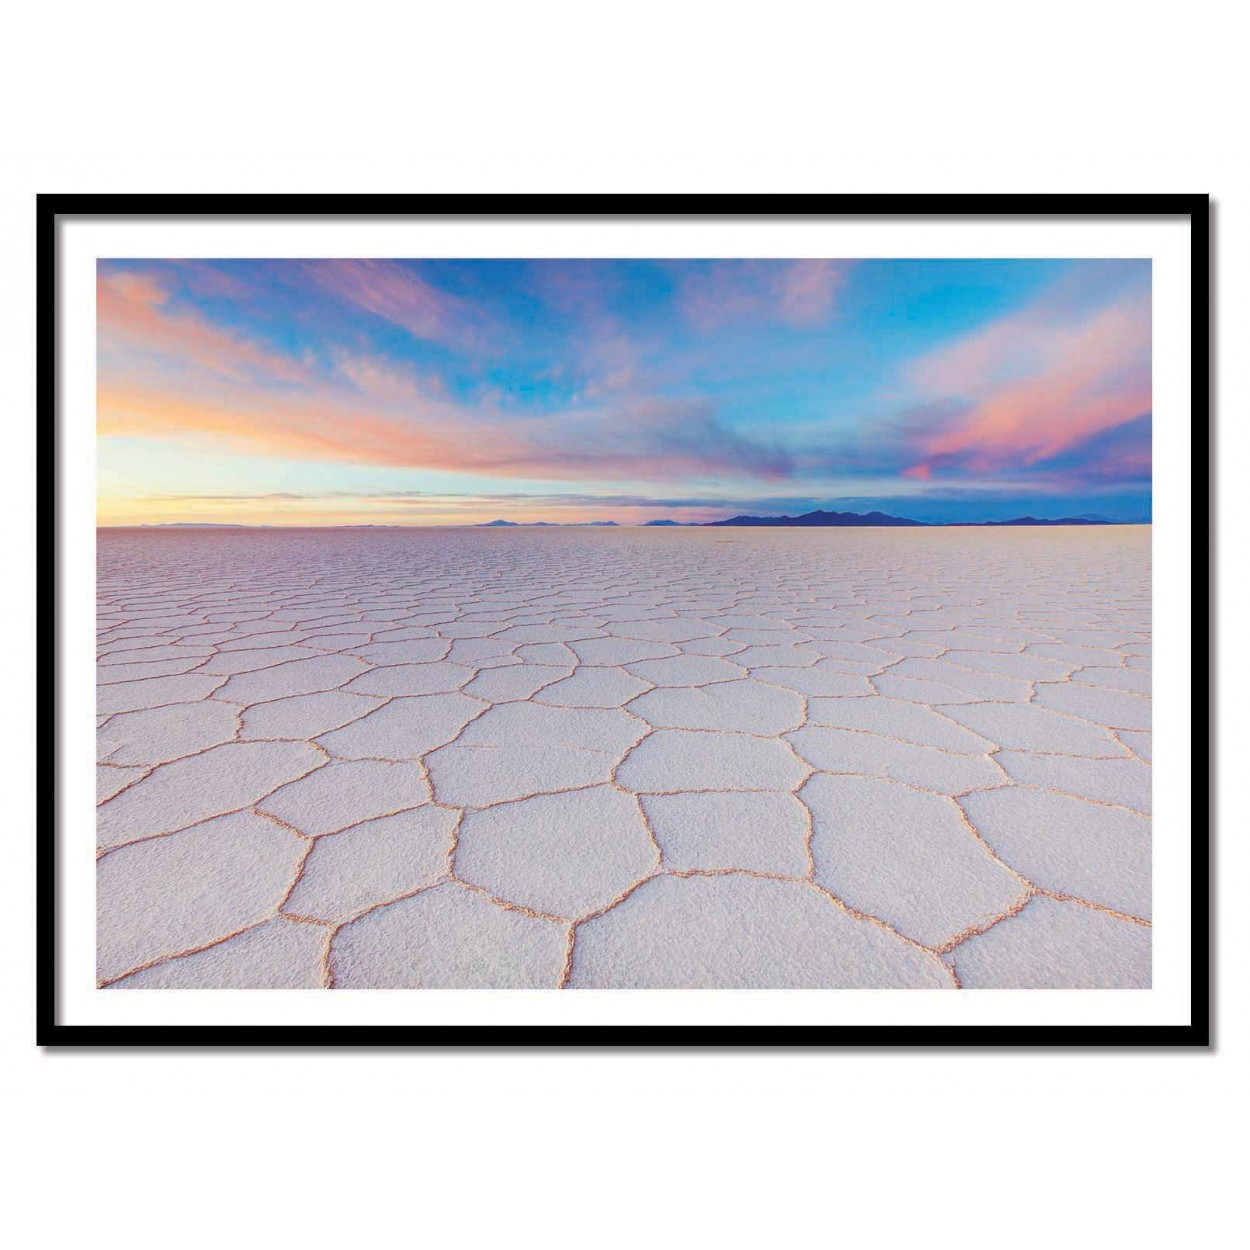 Photography Arty On Print For Home Decoration Tenderness